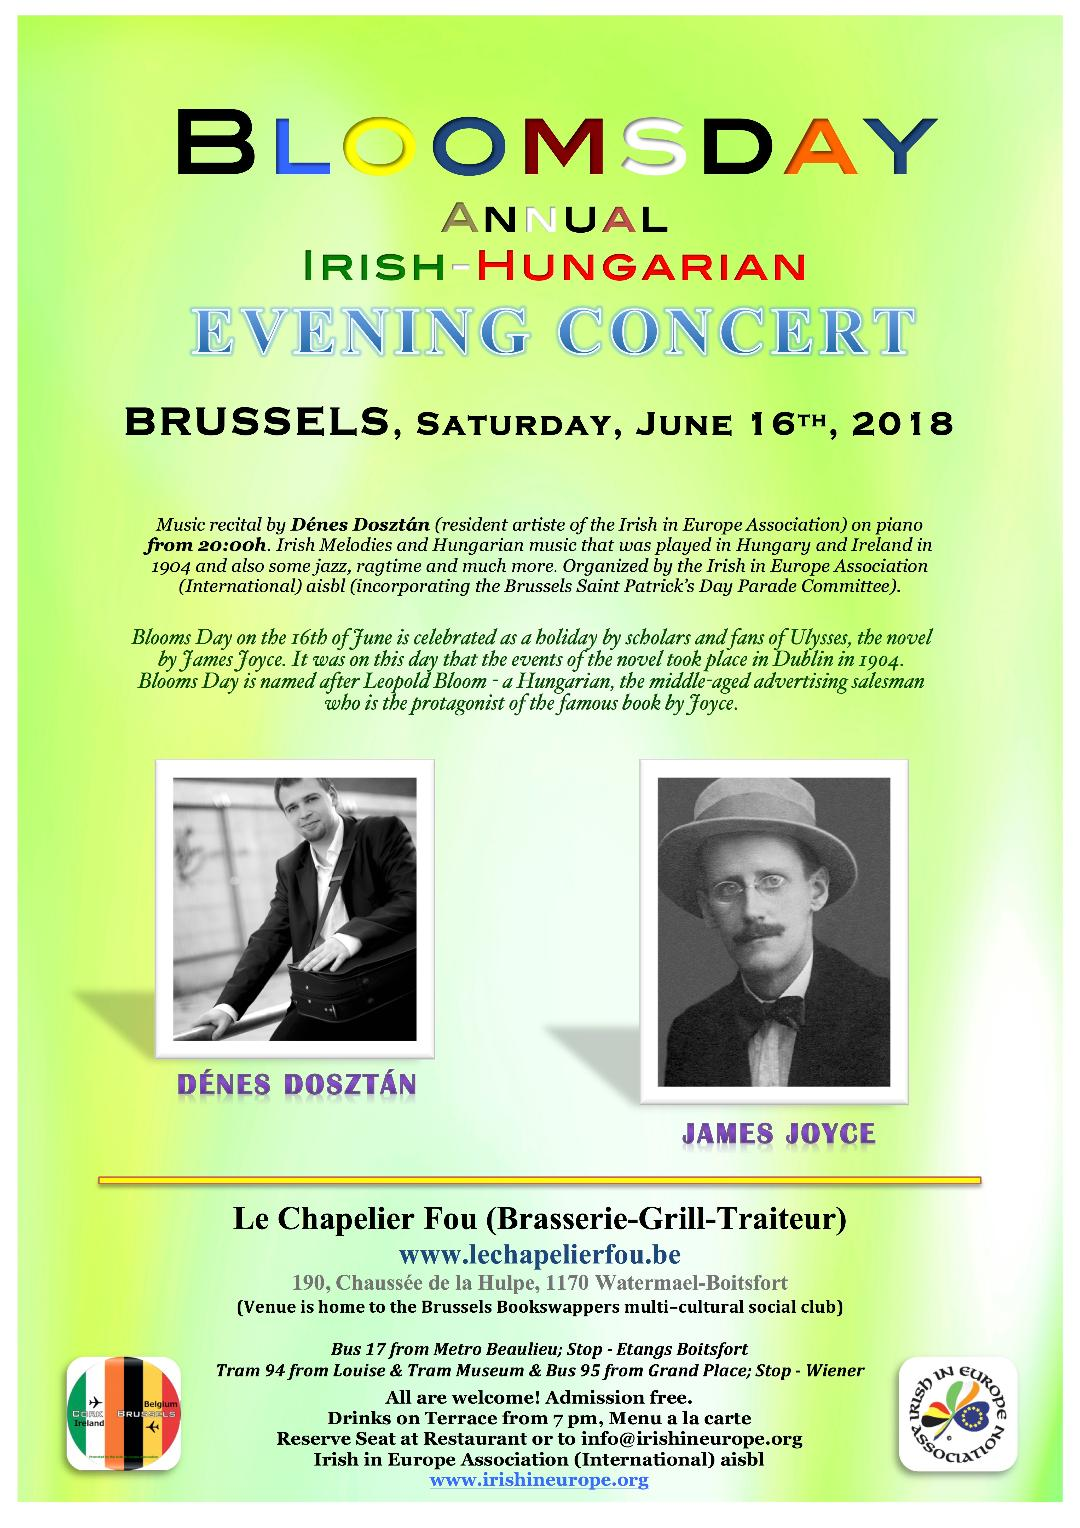 Bloomsday 7th Annual Irish Hungarian Concert in Brussels – 16 June